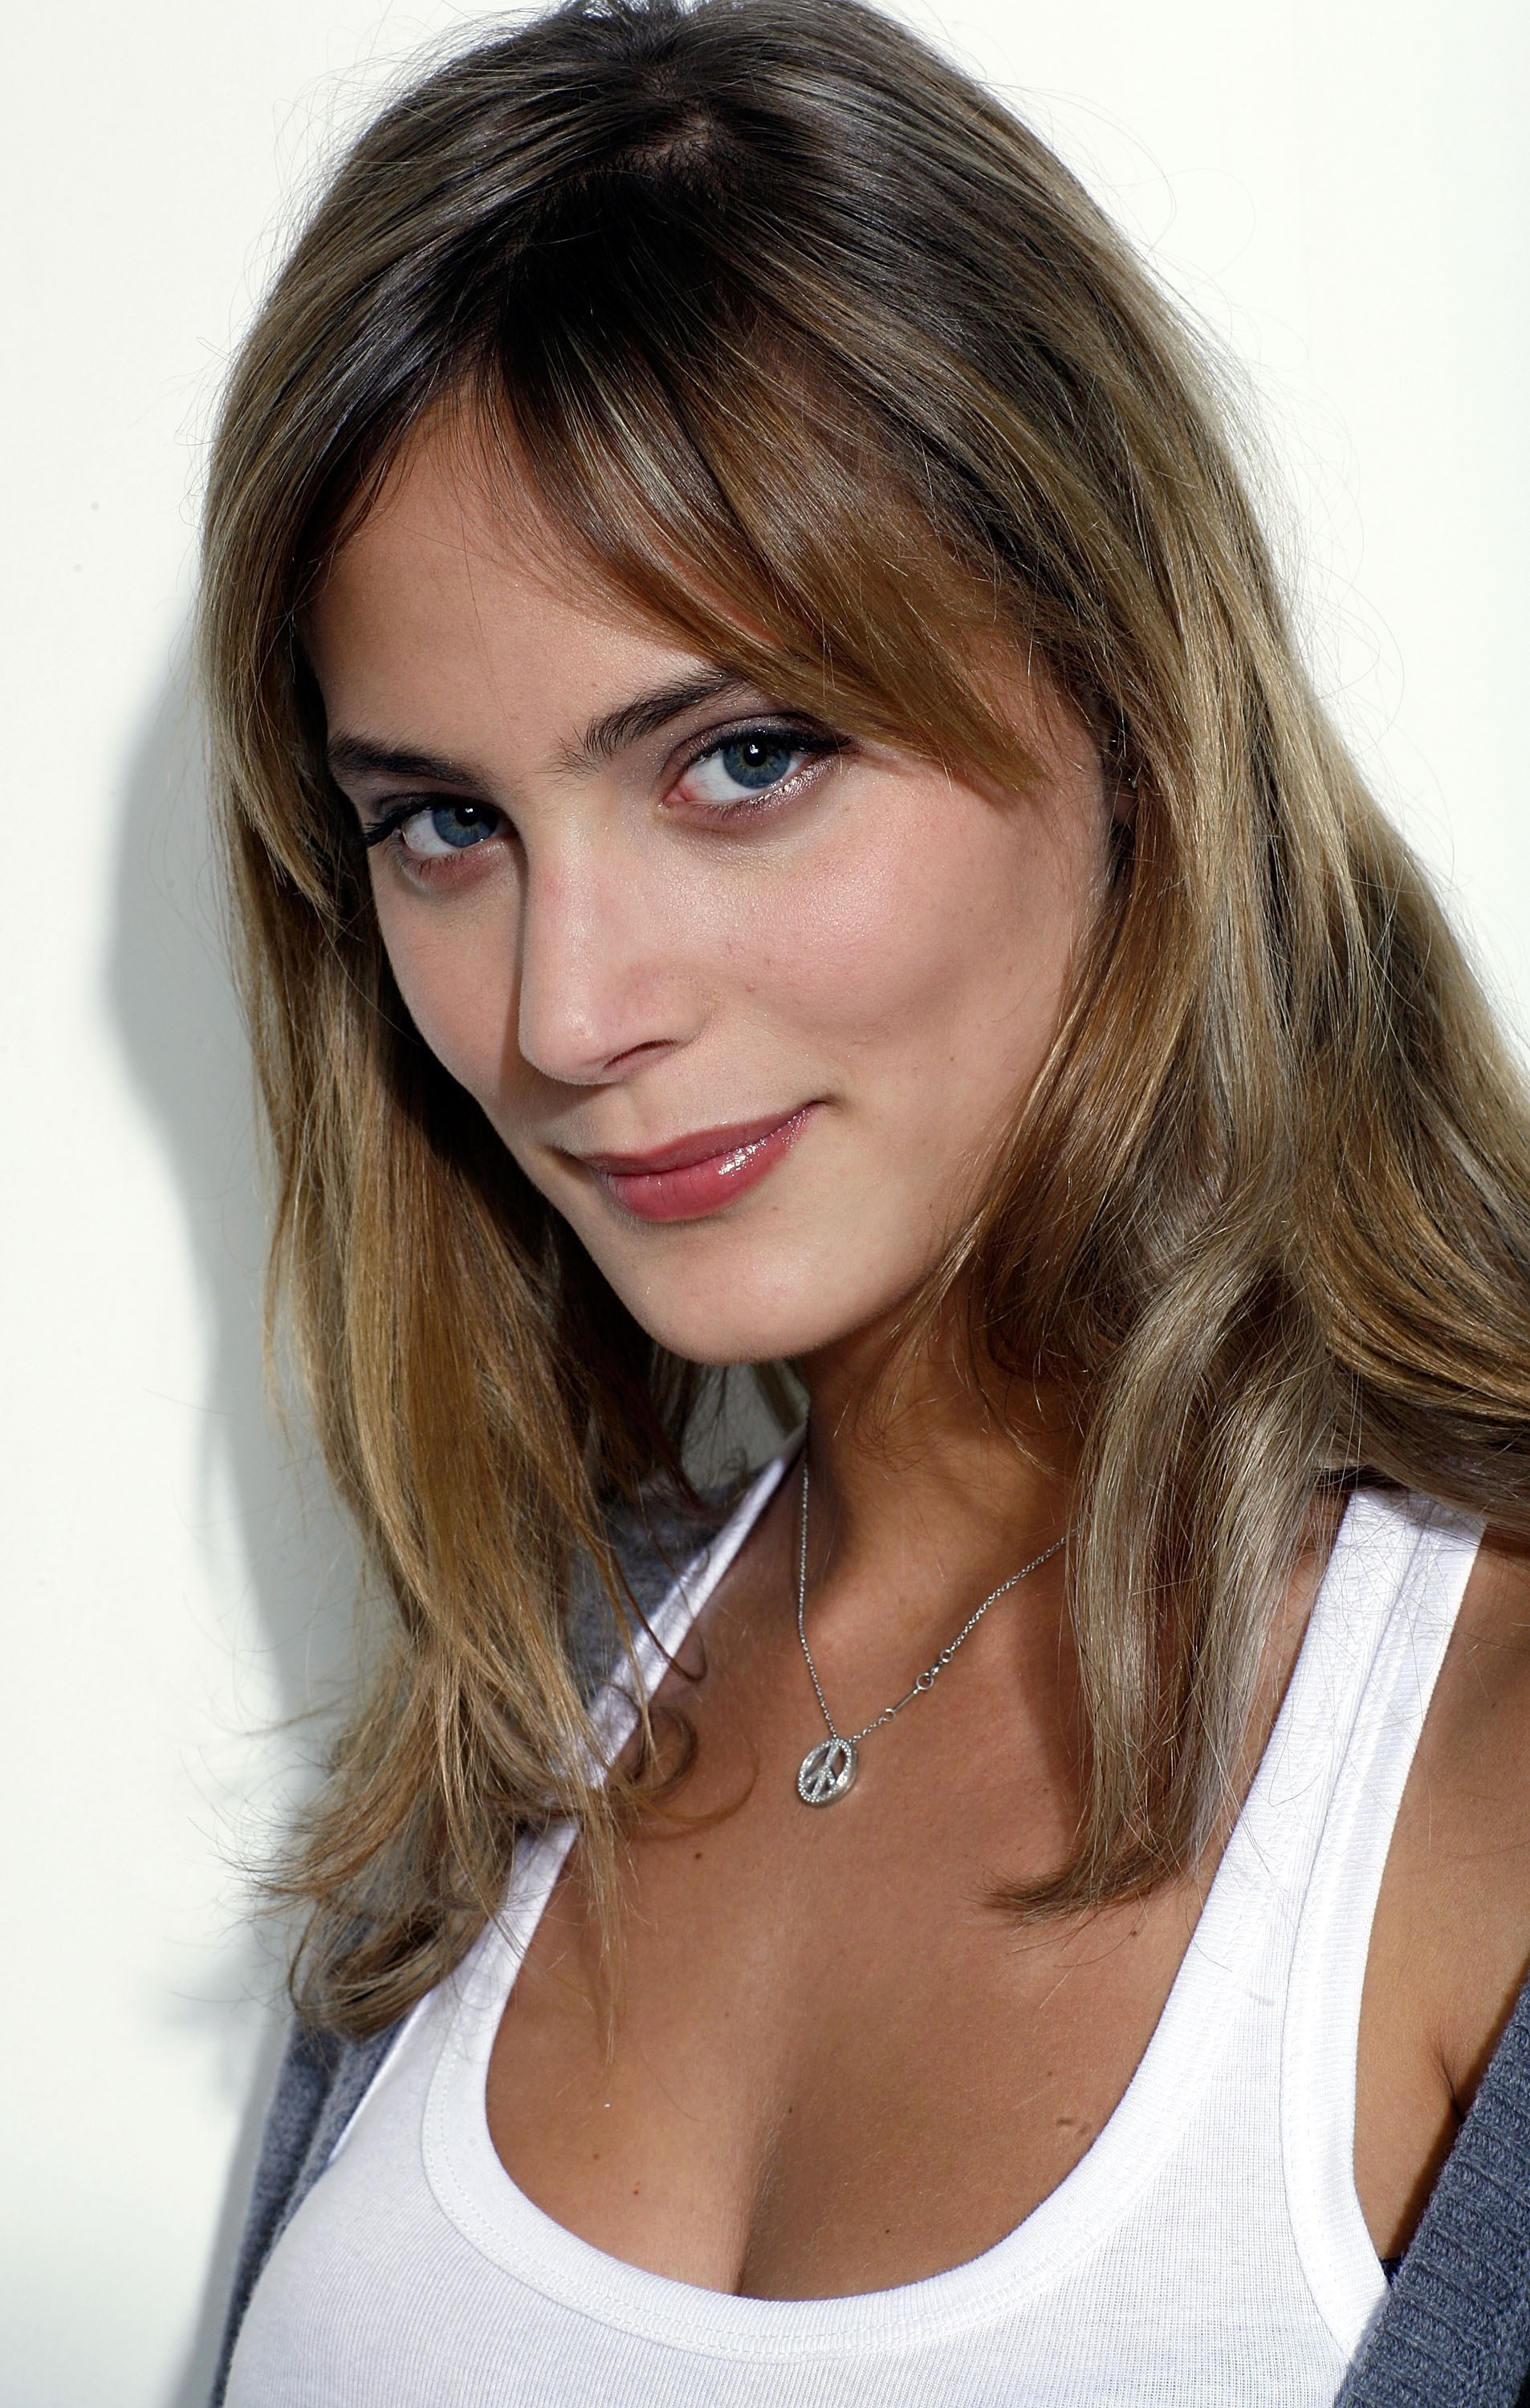 Zeitoun >> Nora Arnezeder | Known people - famous people news and biographies